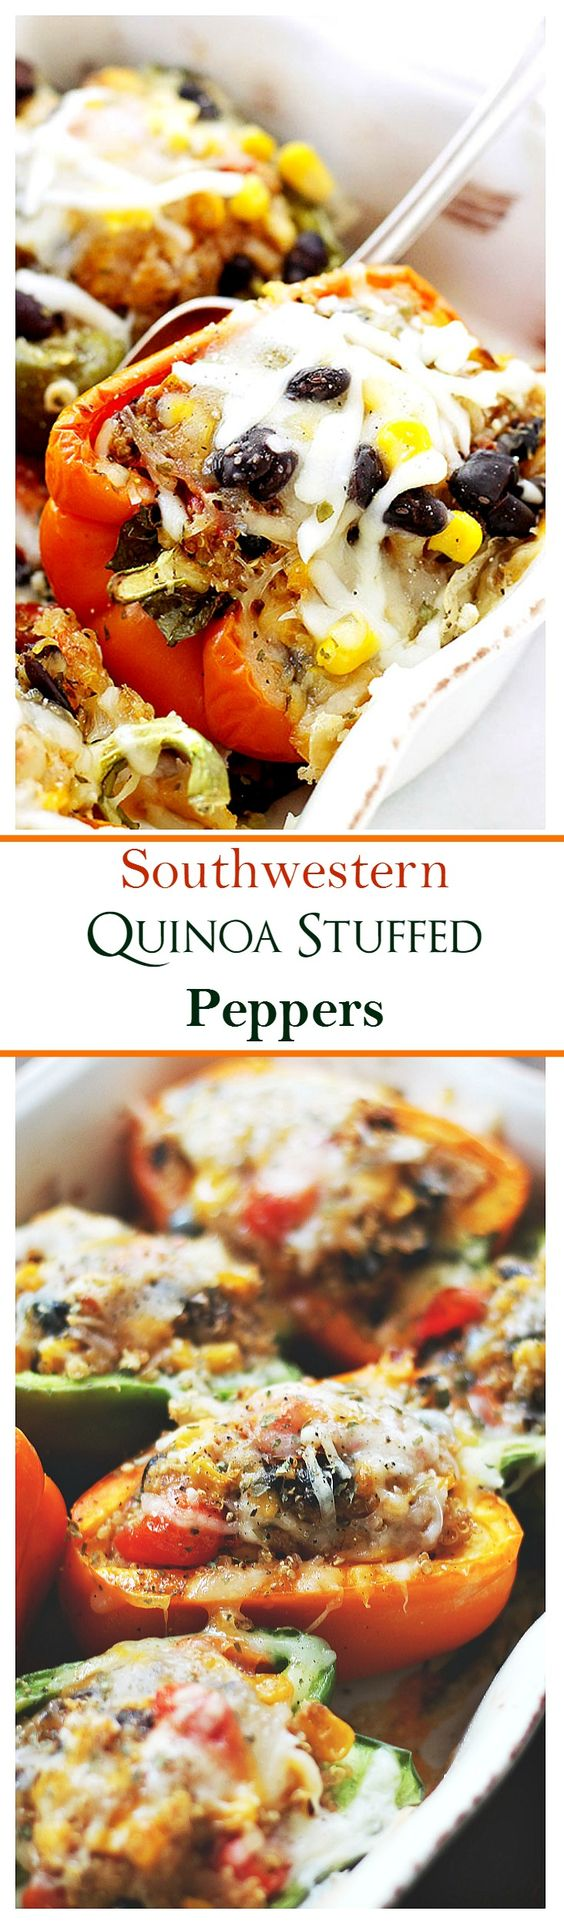 Southwestern Quinoa Stuffed Peppers: Stuffed with a delicious and cheesy quinoa mixture, these peppers are flavorful, healthy and filling!